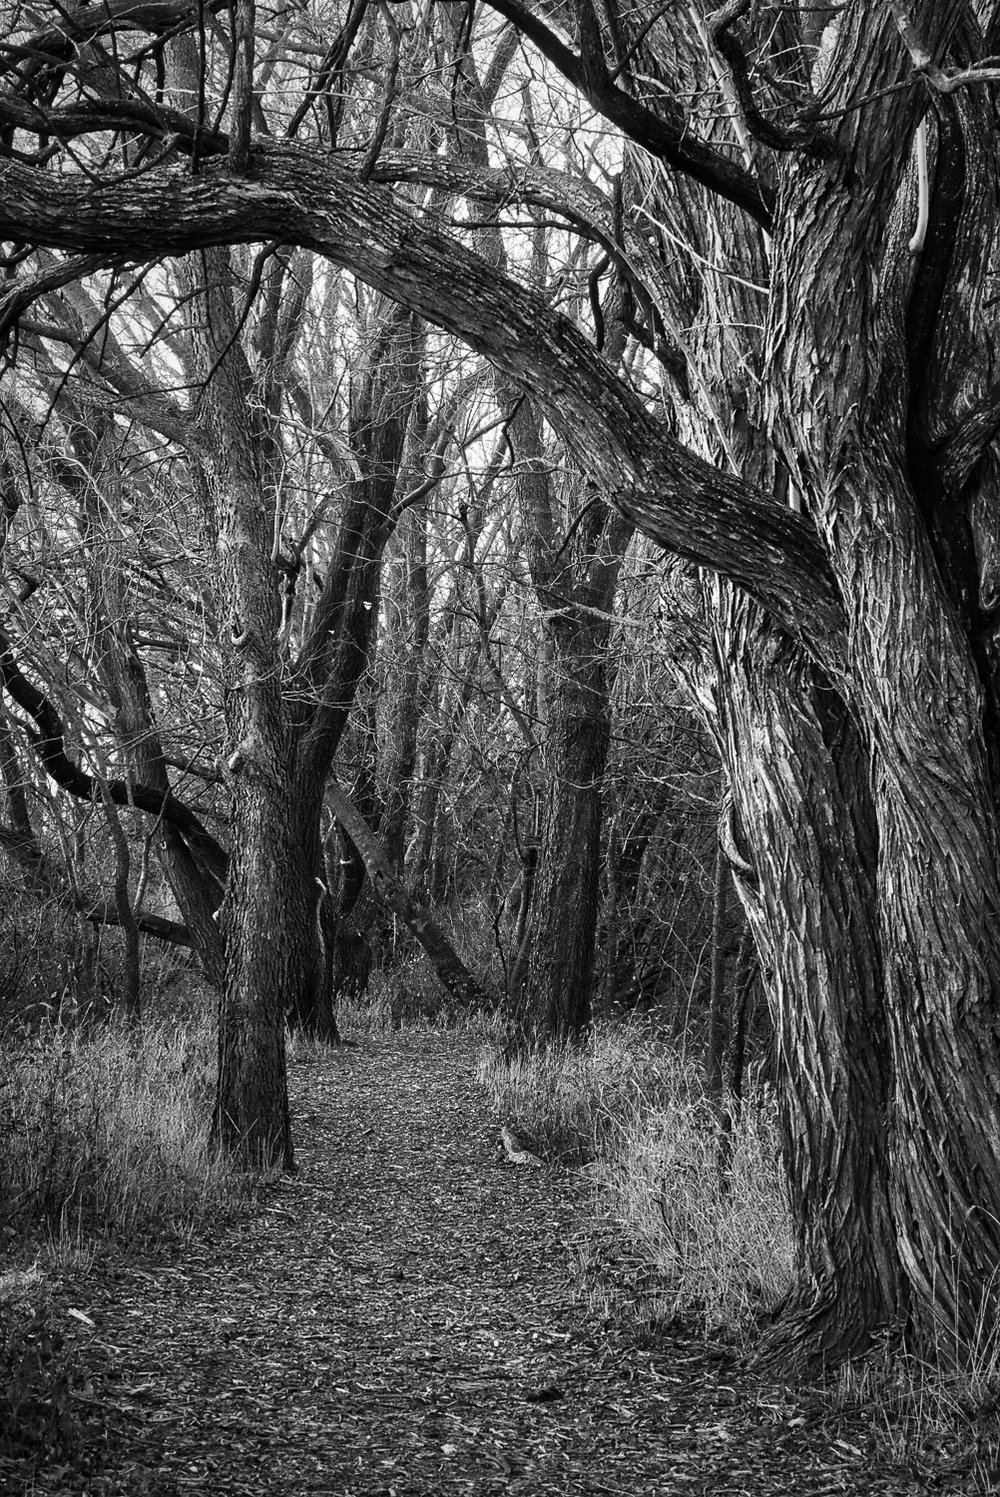 Wooded Trail in Black & White